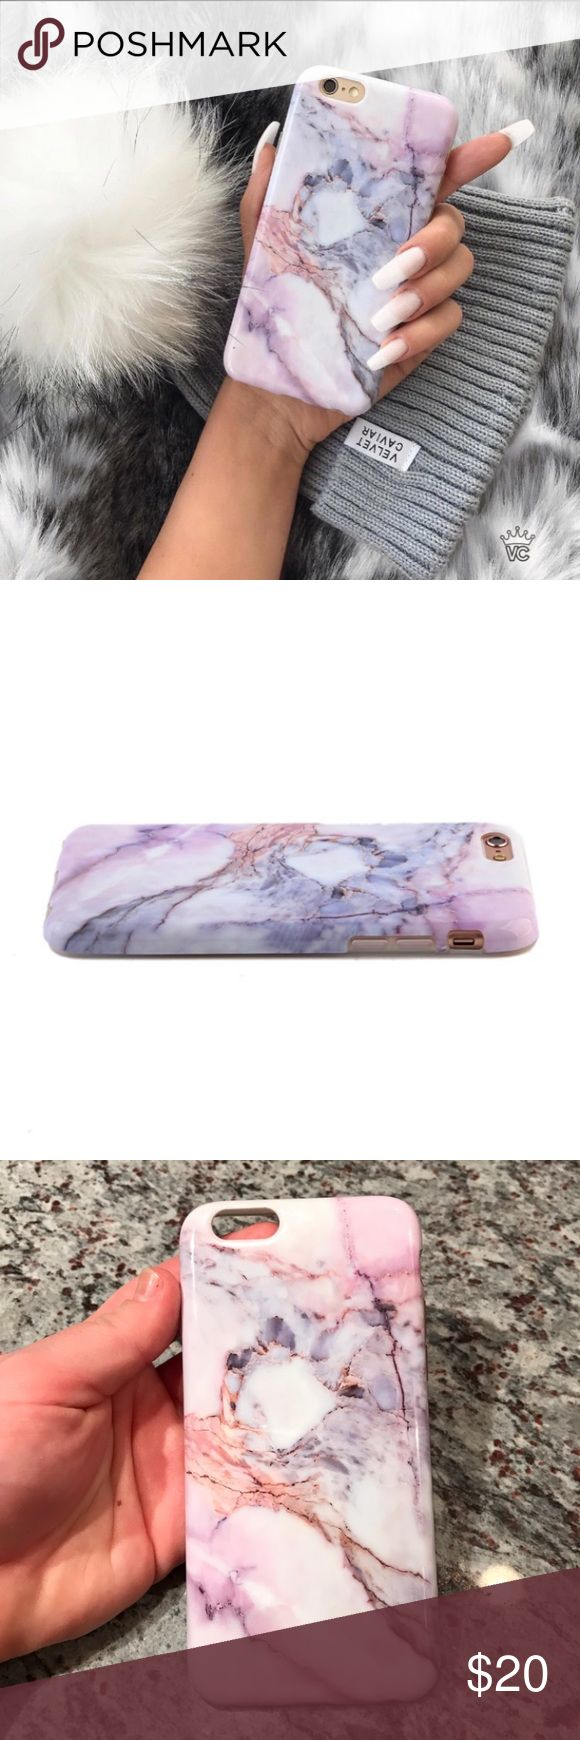 Velvet Caviar Marble iPhone case Velvet Caviar Violet Sky Marble iPhone case for iPhone 6 or iPhone 6s in great condition! Only used for a few weeks then I upgraded my phone so I can't use it anymore Accessories Phone Cases